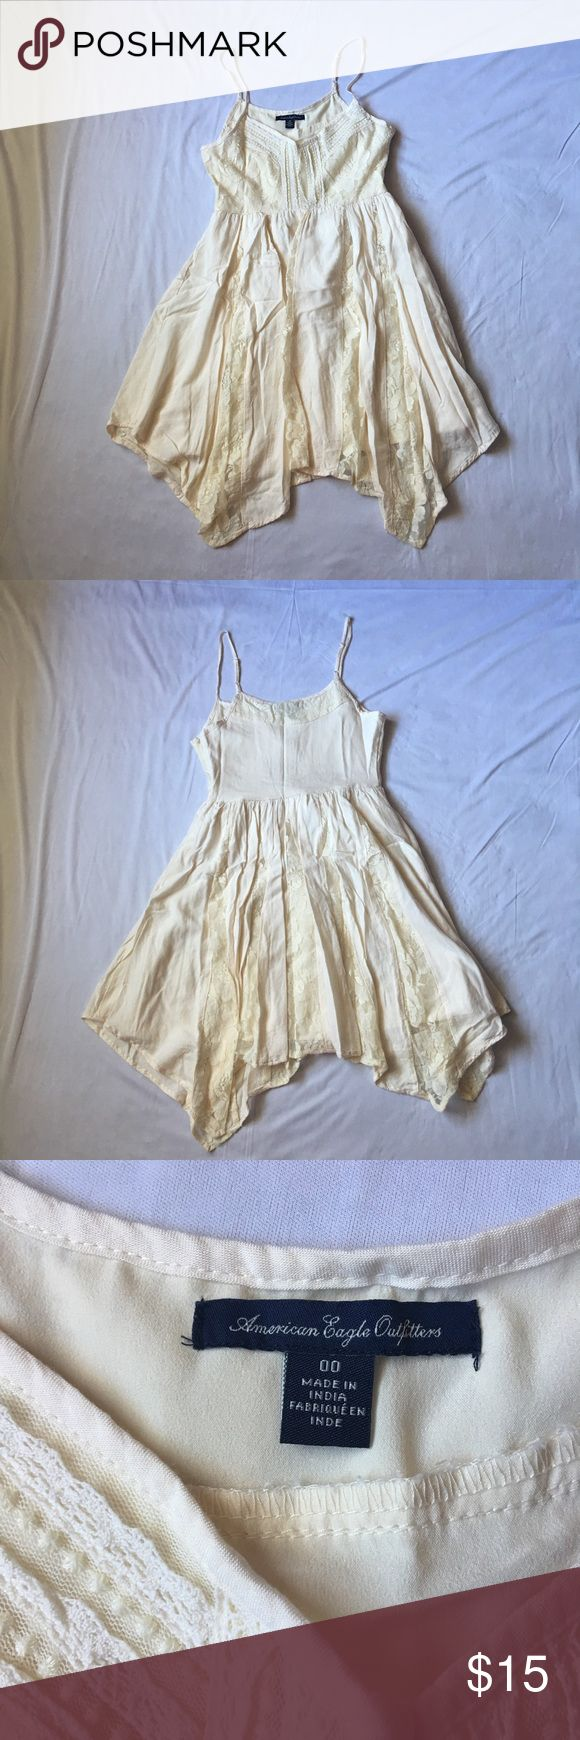 Cream American Eagle Dress This is a beautiful cream American Eagle Dress in near perfect condition. Only worn twice. The only flaw is right above the hook closure there is blue discoloration from wearing a jean jacket. The spots are very tiny and aren't noticeable when worn since it is under the arm. Any questions just ask! First photo is stock photo. American Eagle Outfitters Dresses